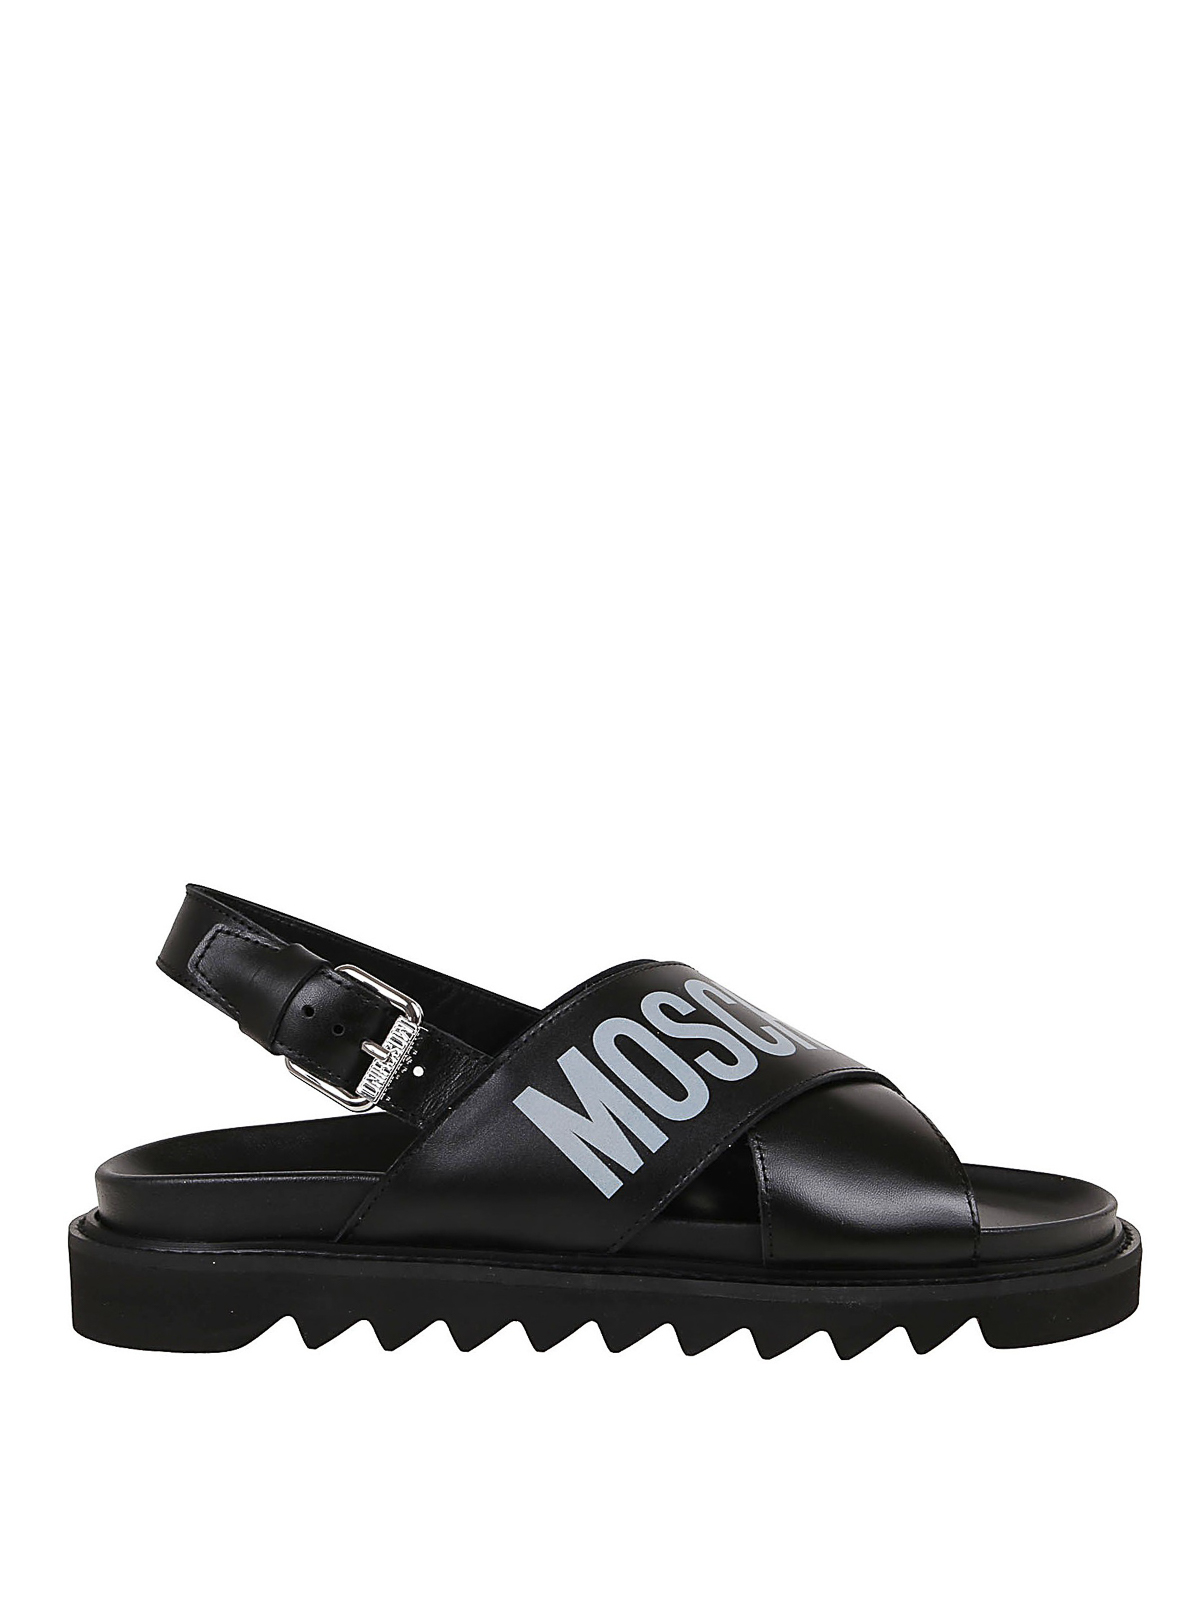 Moschino LEATHER CRISS CROSS SANDALS